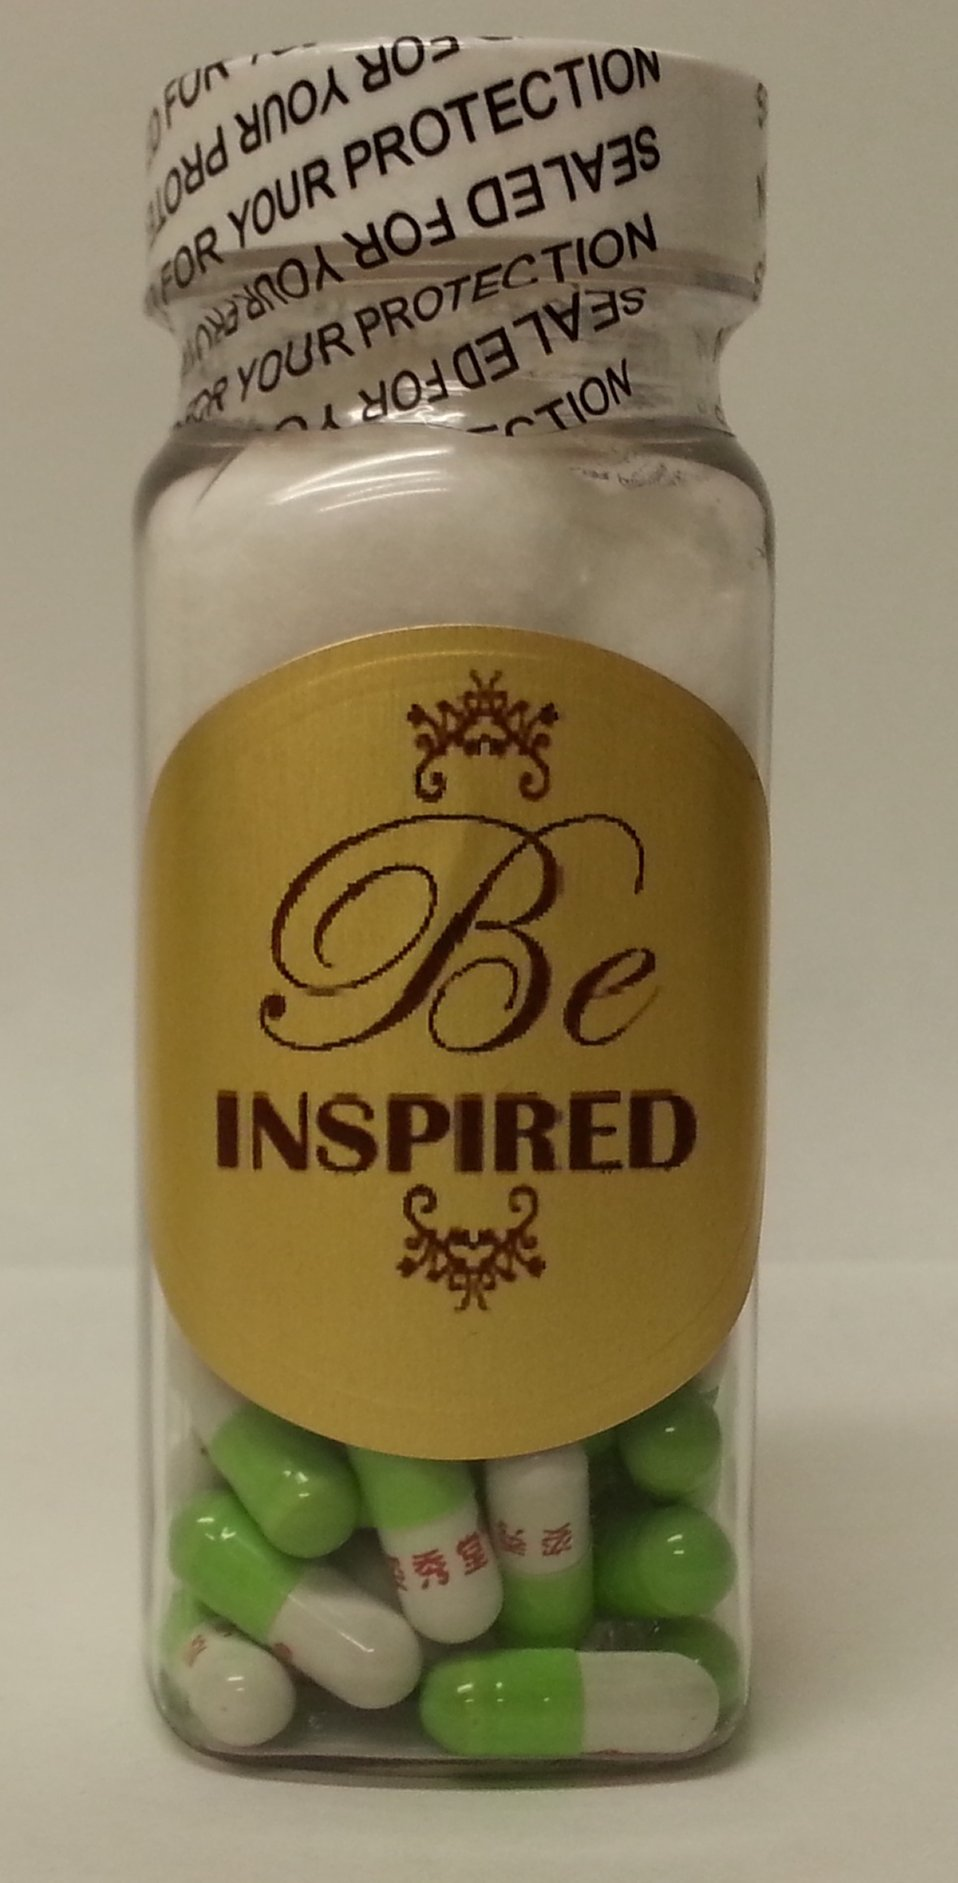 Be Inspired 10-10-2013 sibutramine, phenolphtalein